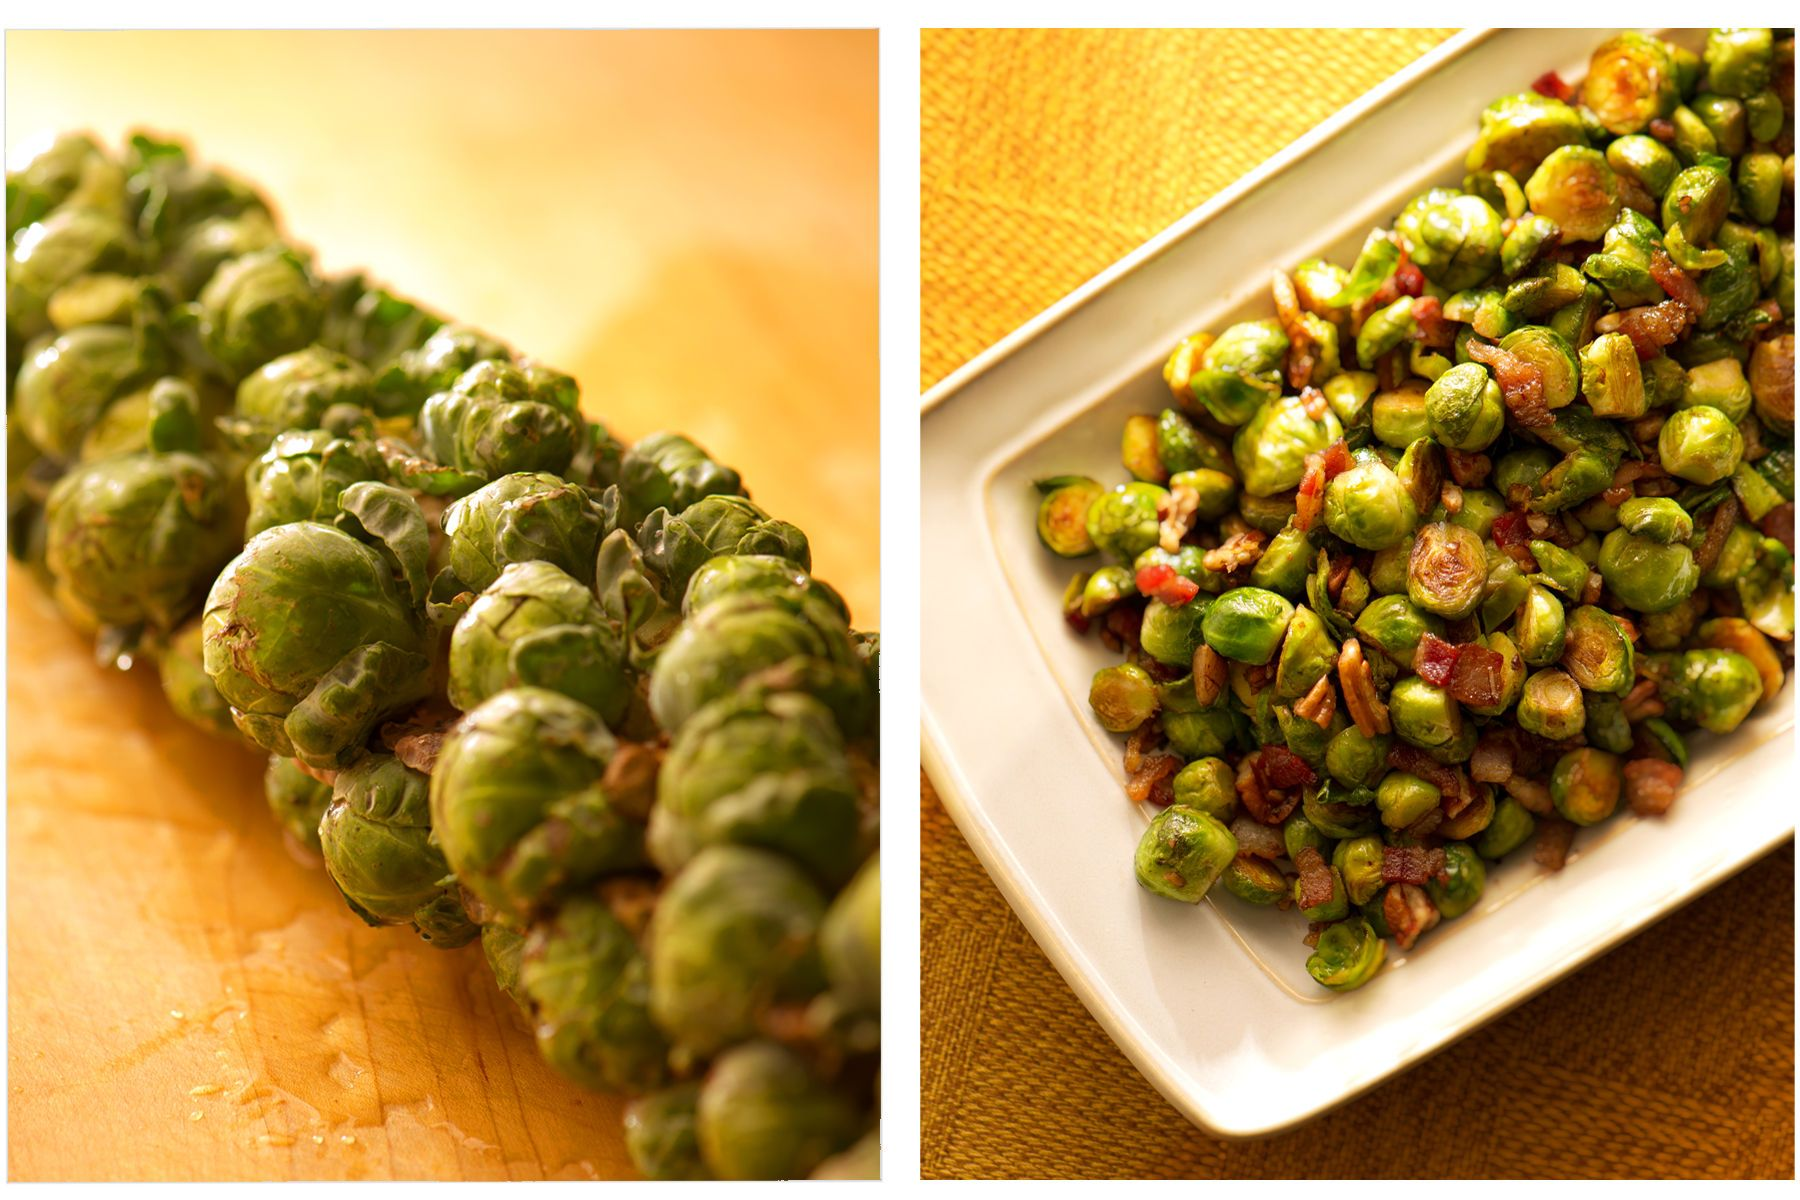 1brussel_sprouts.jpg